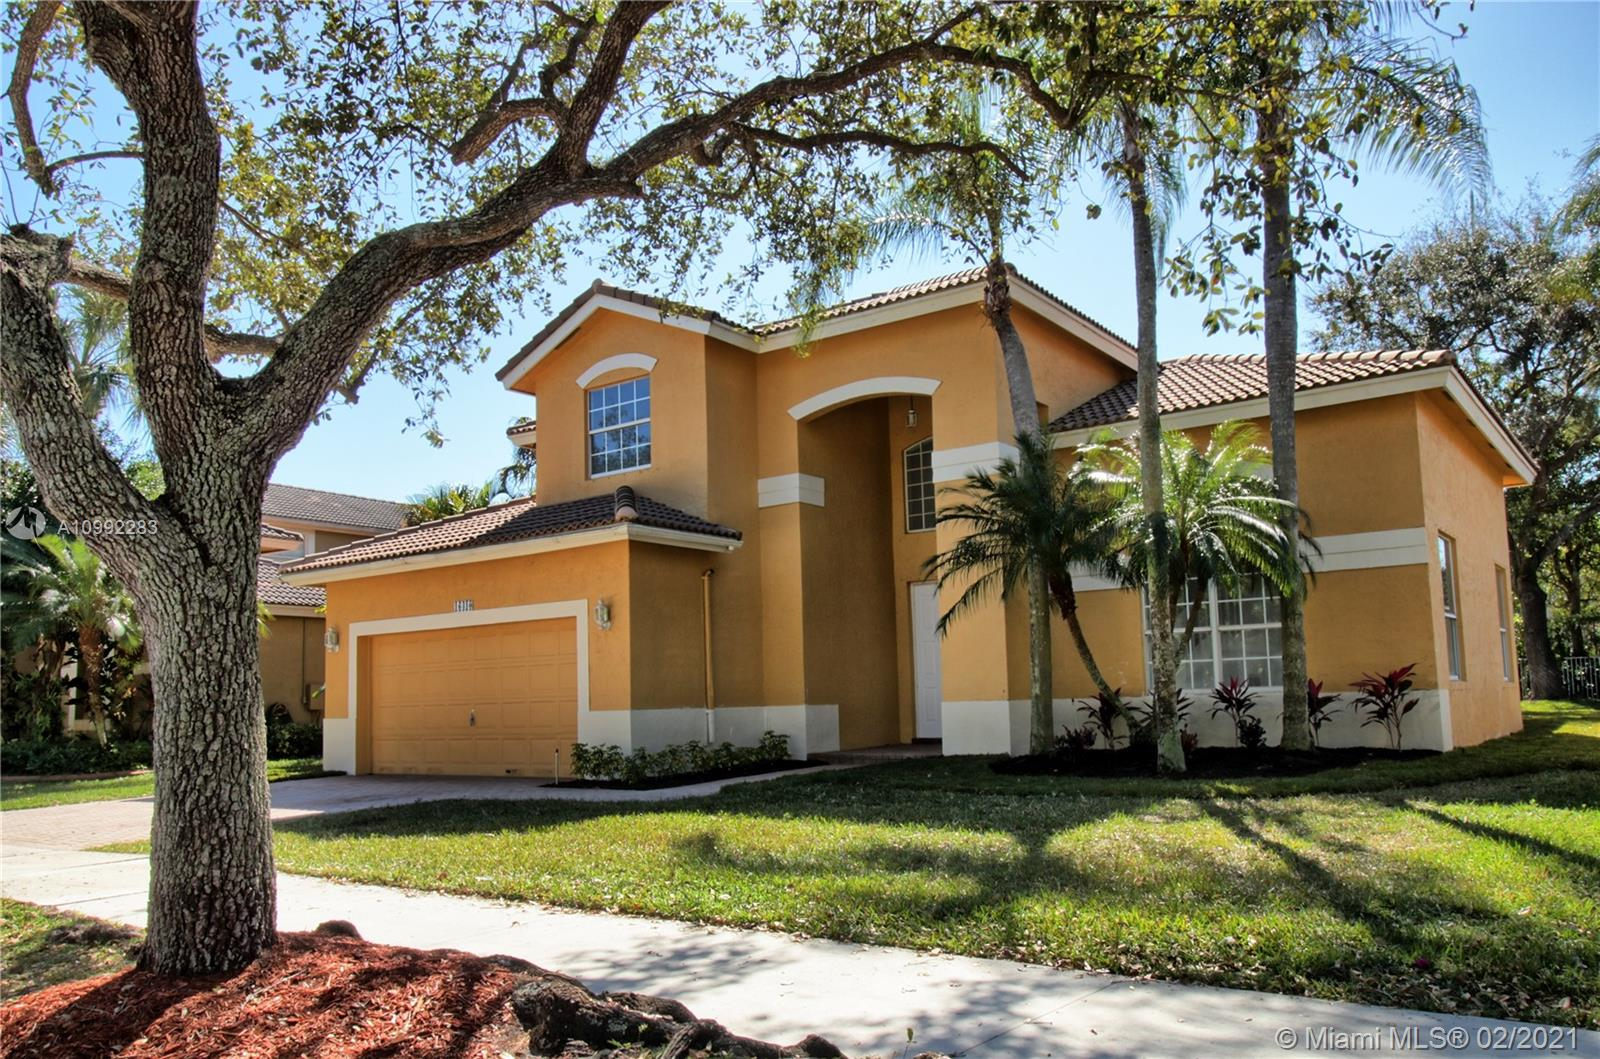 Spectacular and gorgeous home located in desirable Emerald Estates neighborhood. Completely remodeled, from top to bottom, with top of the line features. New Washer & Dryer, new Water Heater, new A/C, new Italian design kitchen with stainless steel appliances and wine cooler, new garage door opener, beautiful oversized quartz countertops, porcelain floors (porcelanato) throughout first floor and wood on second floor, new deluxe ceiling fans with light and remote control in every room, all bathrooms tastefully renovated with Italian tiles, high quality vanities and glass shower doors. Huge master bedroom downstairs with plenty of closet space Full service community includes lawn maintenance, sprinklers, basic cable, alarm monitoring as well as a community pool and gym. Weston's A+ schools.